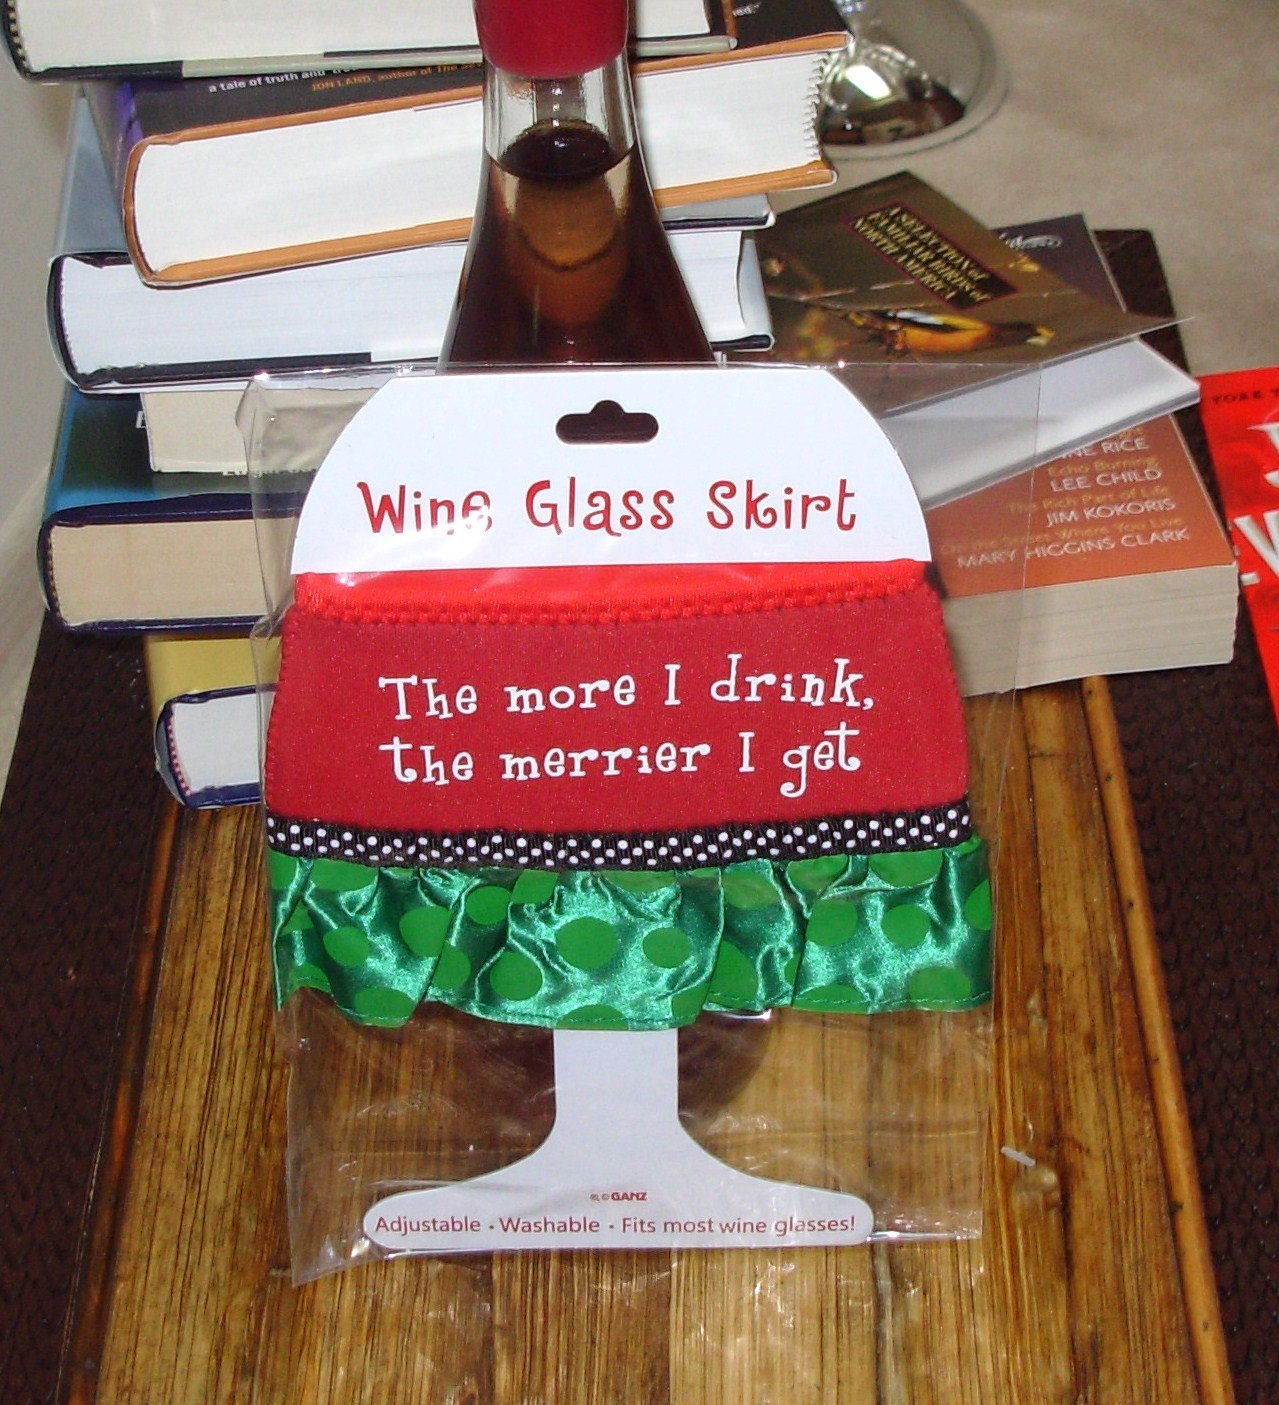 THE MORE I DRINK HOLIDAY WINE GLASS SKIRT CHRISTMAS HOLIDAY  ADJUSTABLE WASHABLE NEW GANZ